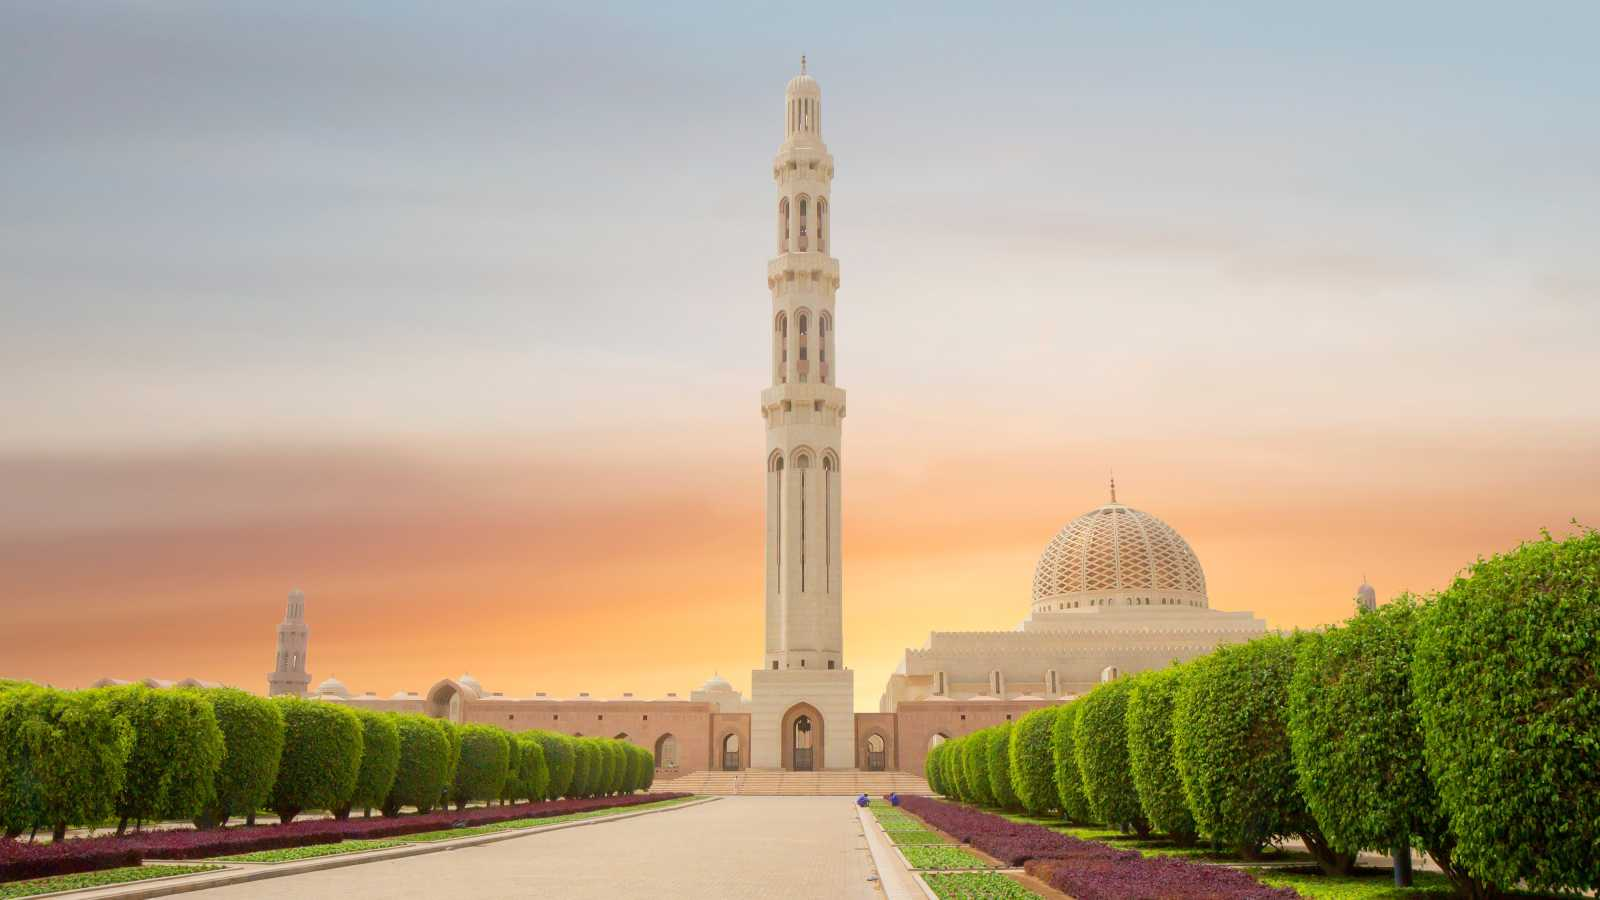 View of the Sultan Qaboos Mosque in Muscat Oman